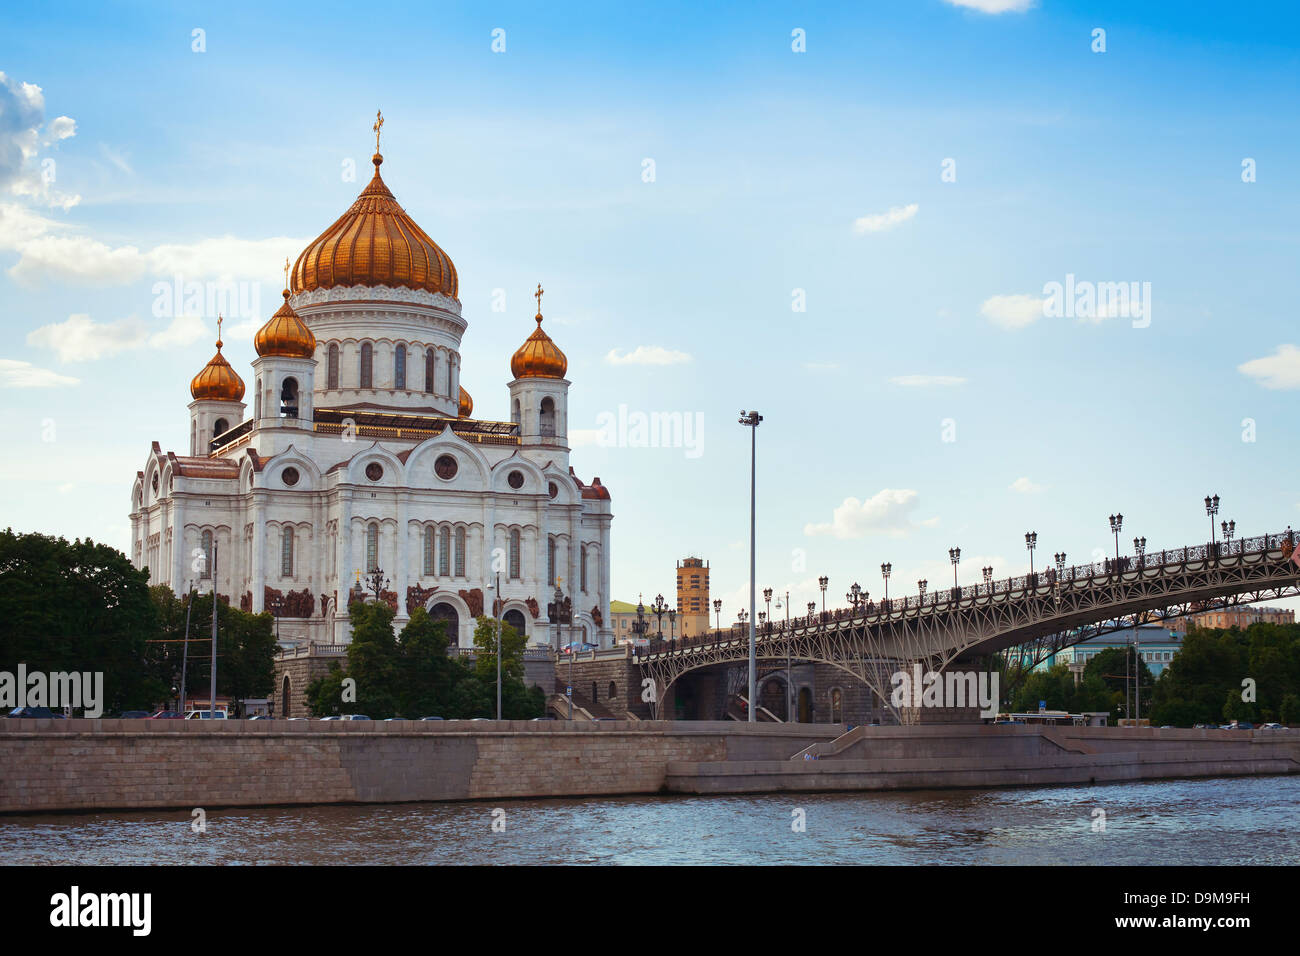 Cathédrale du Christ Sauveur à Moscou, Russie Photo Stock